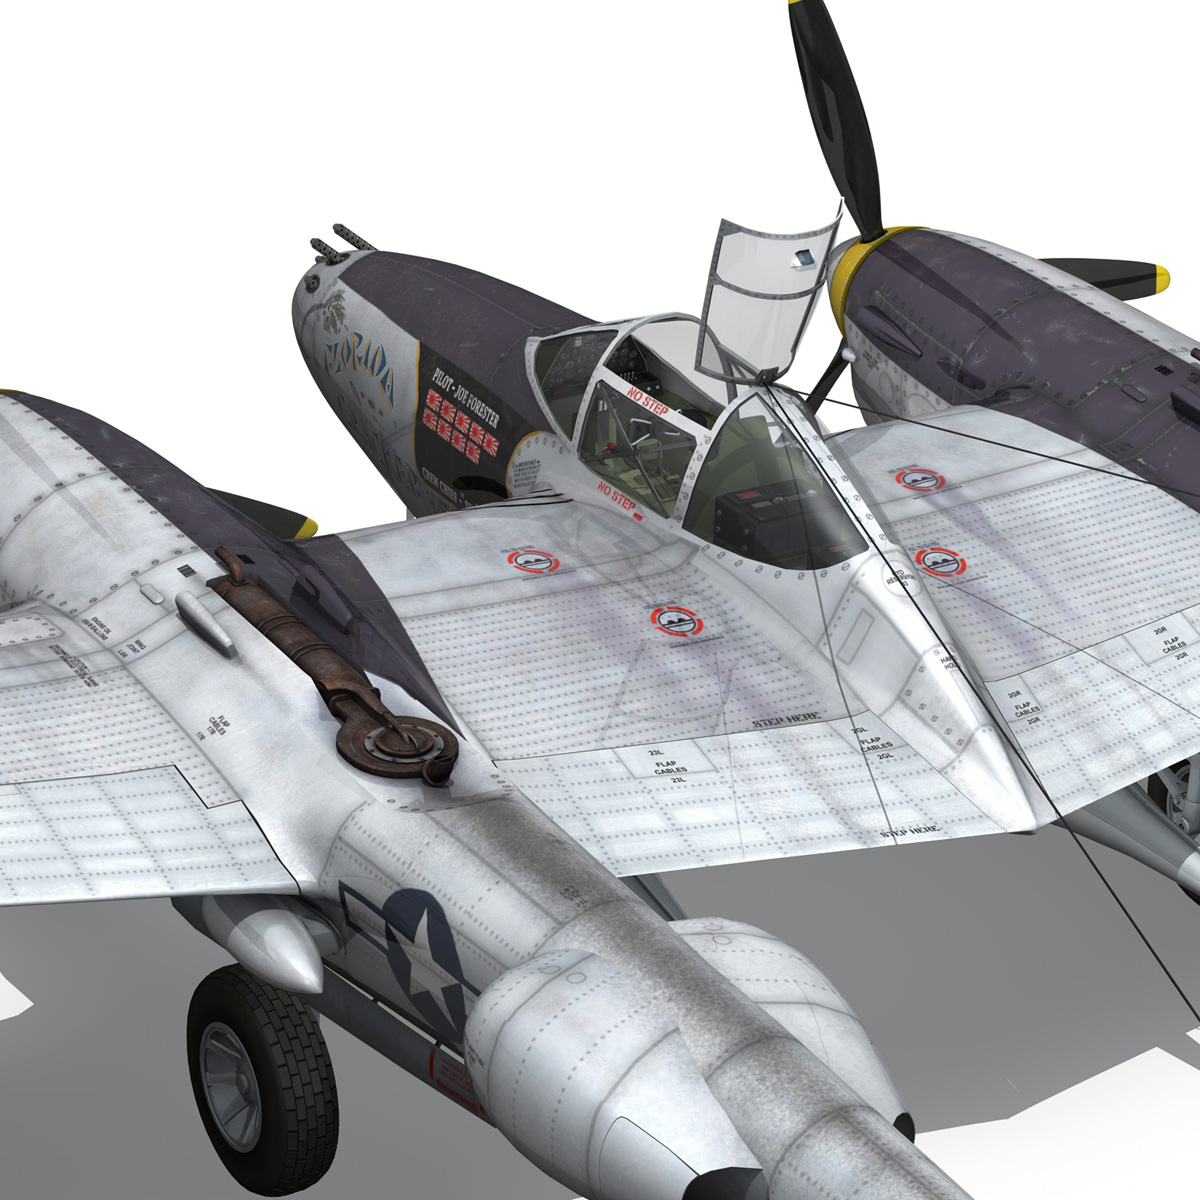 lockheed p-38 lightning – florida cracker 3d model fbx c4d lwo obj 279429